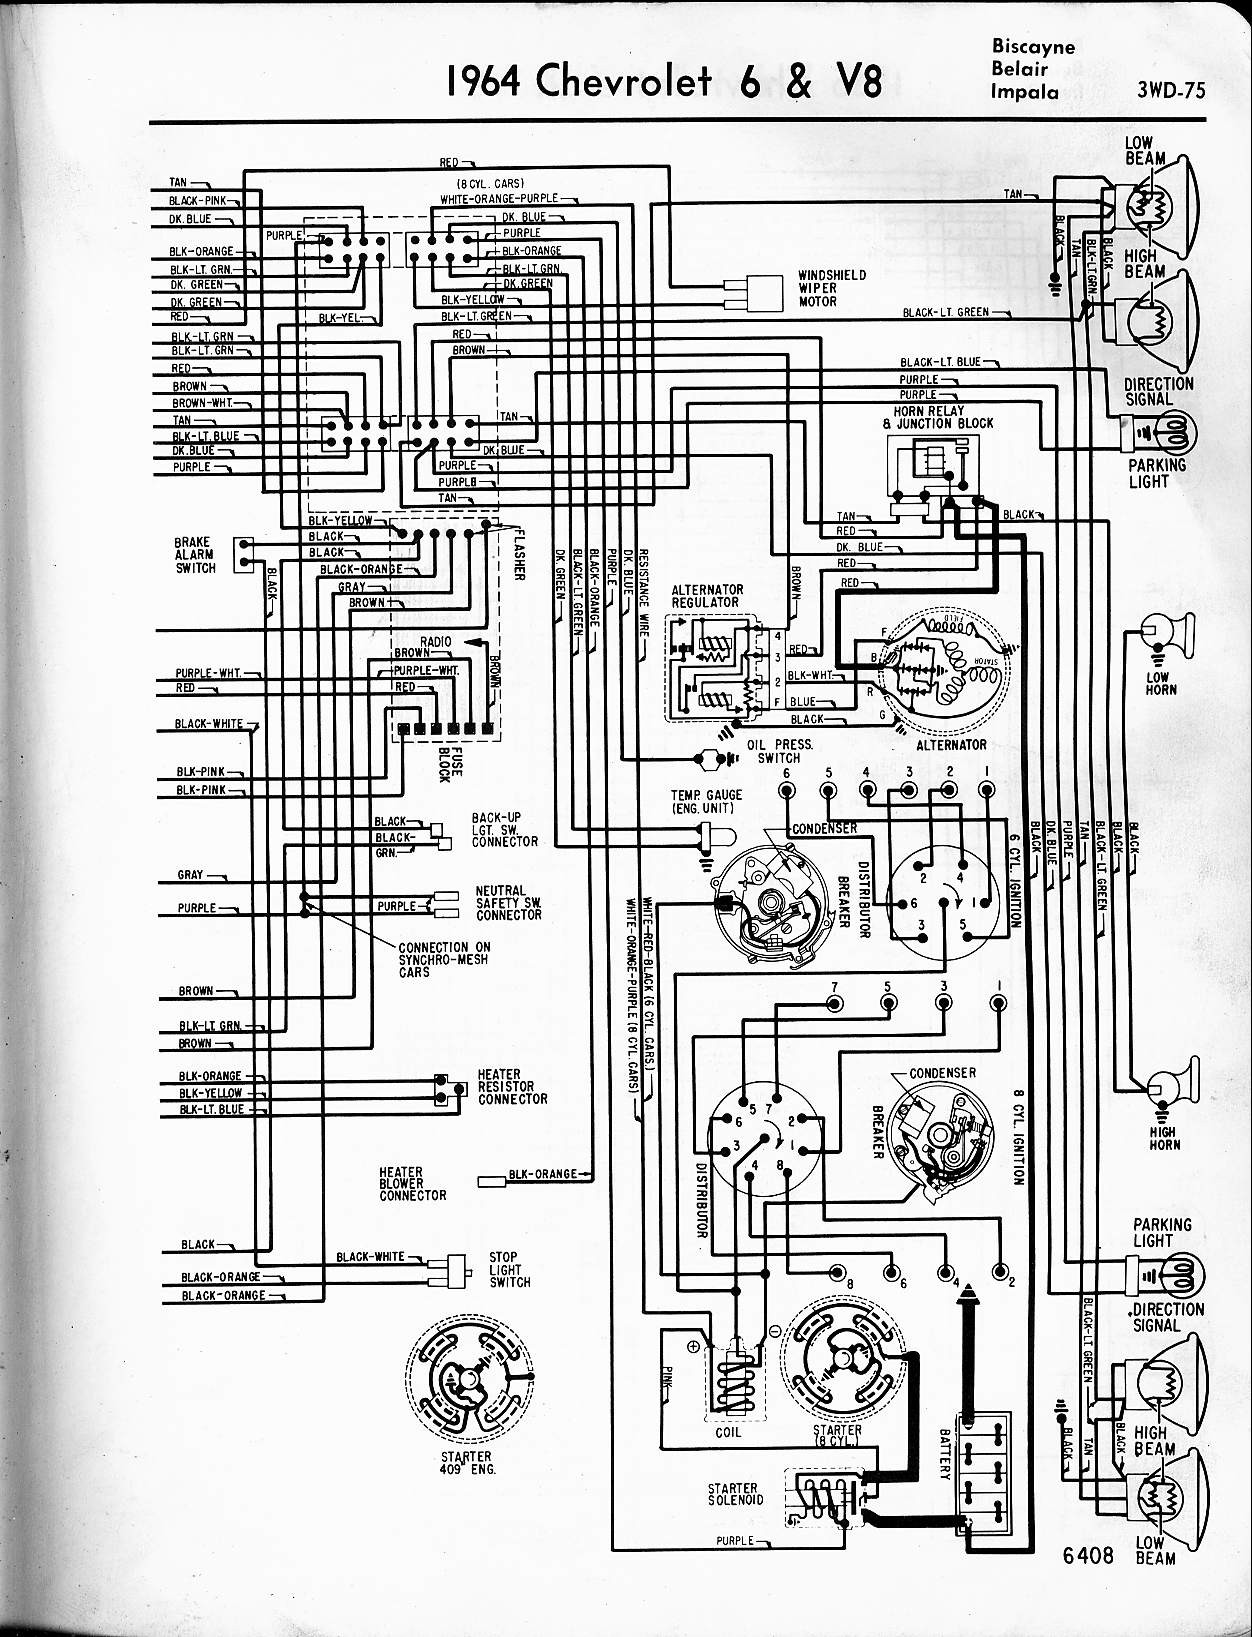 1966 Impala Wiring Diagram Schematics Diagrams 2009 Jeep Patriot Fuse Box 1962 Underhood House Symbols U2022 Rh Maxturner Co Tail Light Chevy